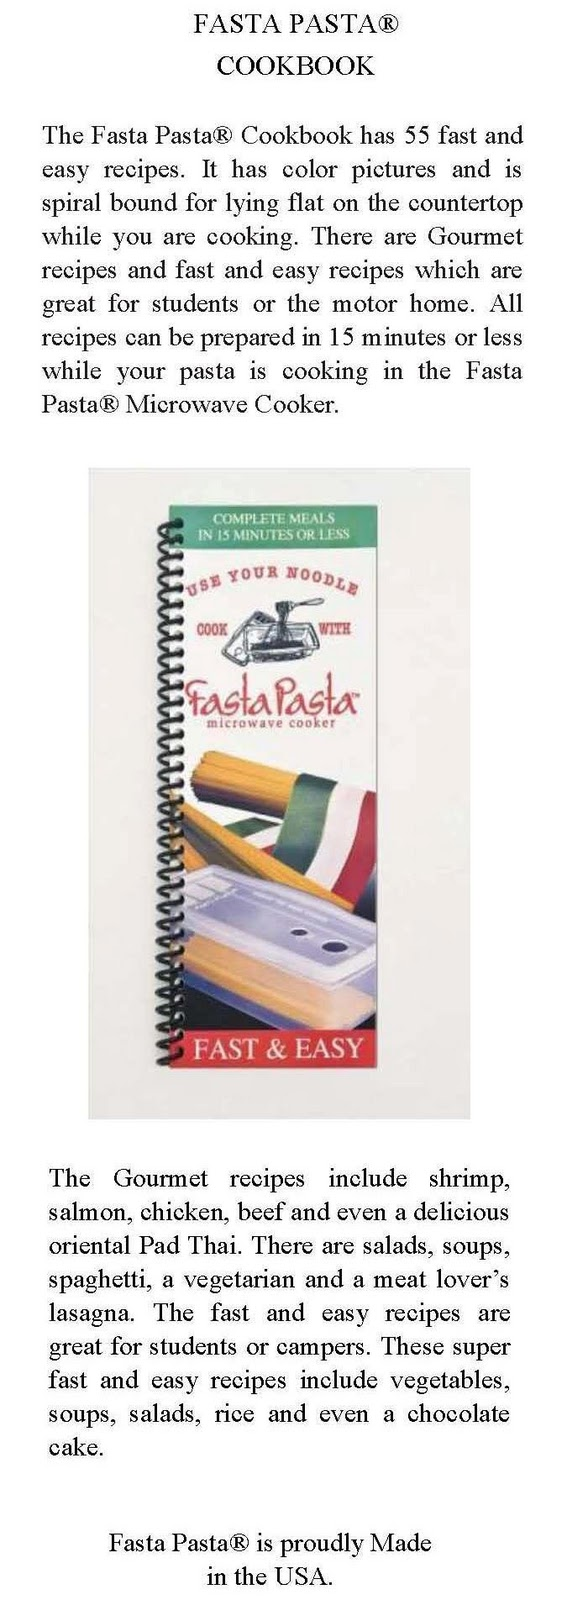 fasta pasta how to use